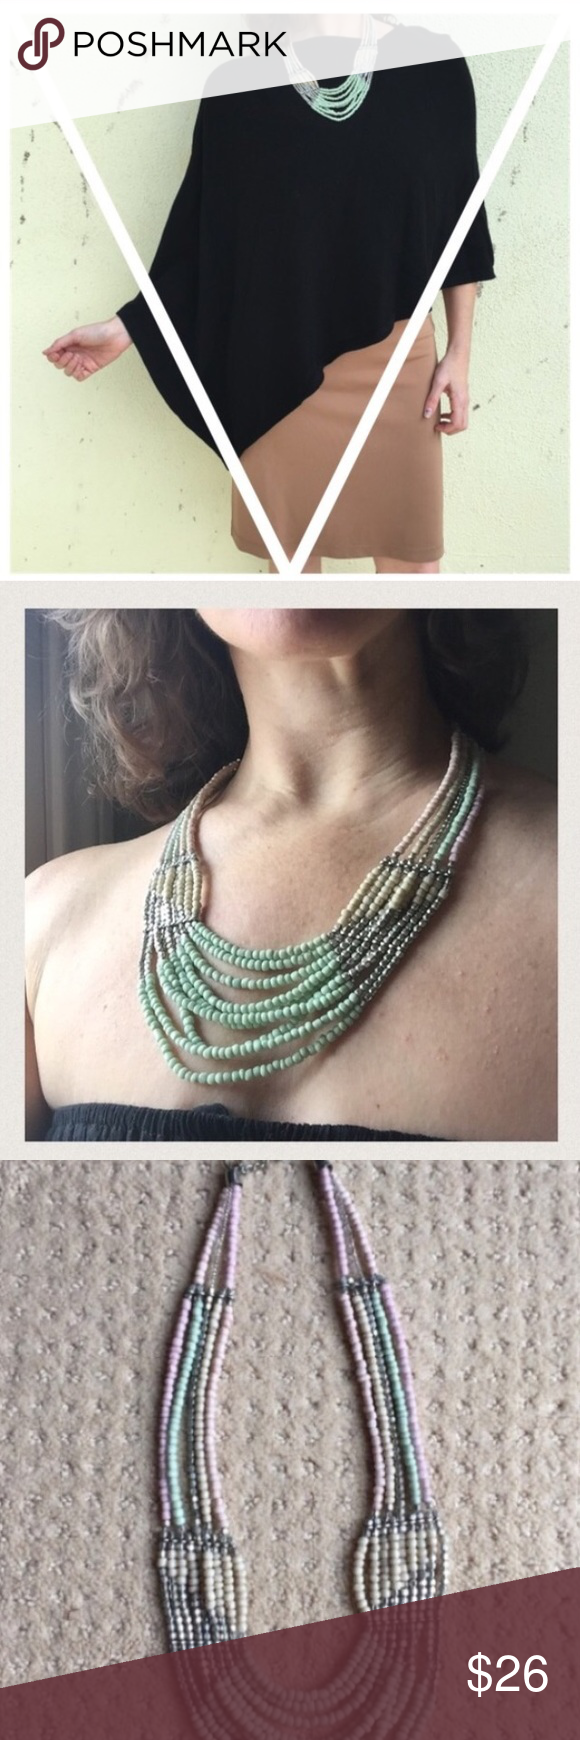 Anthro NECKLACE beaded STATEMENT BIB multi strand Beautiful BeadEd bib STATEMENT necklace...! Lovely pastel shades of green, pink, and beige.  Soft colors that go with so much! Elegant and soho boho chic. With silver tone beads and chain extension. (Ju24) Anthropologie Jewelry Necklaces